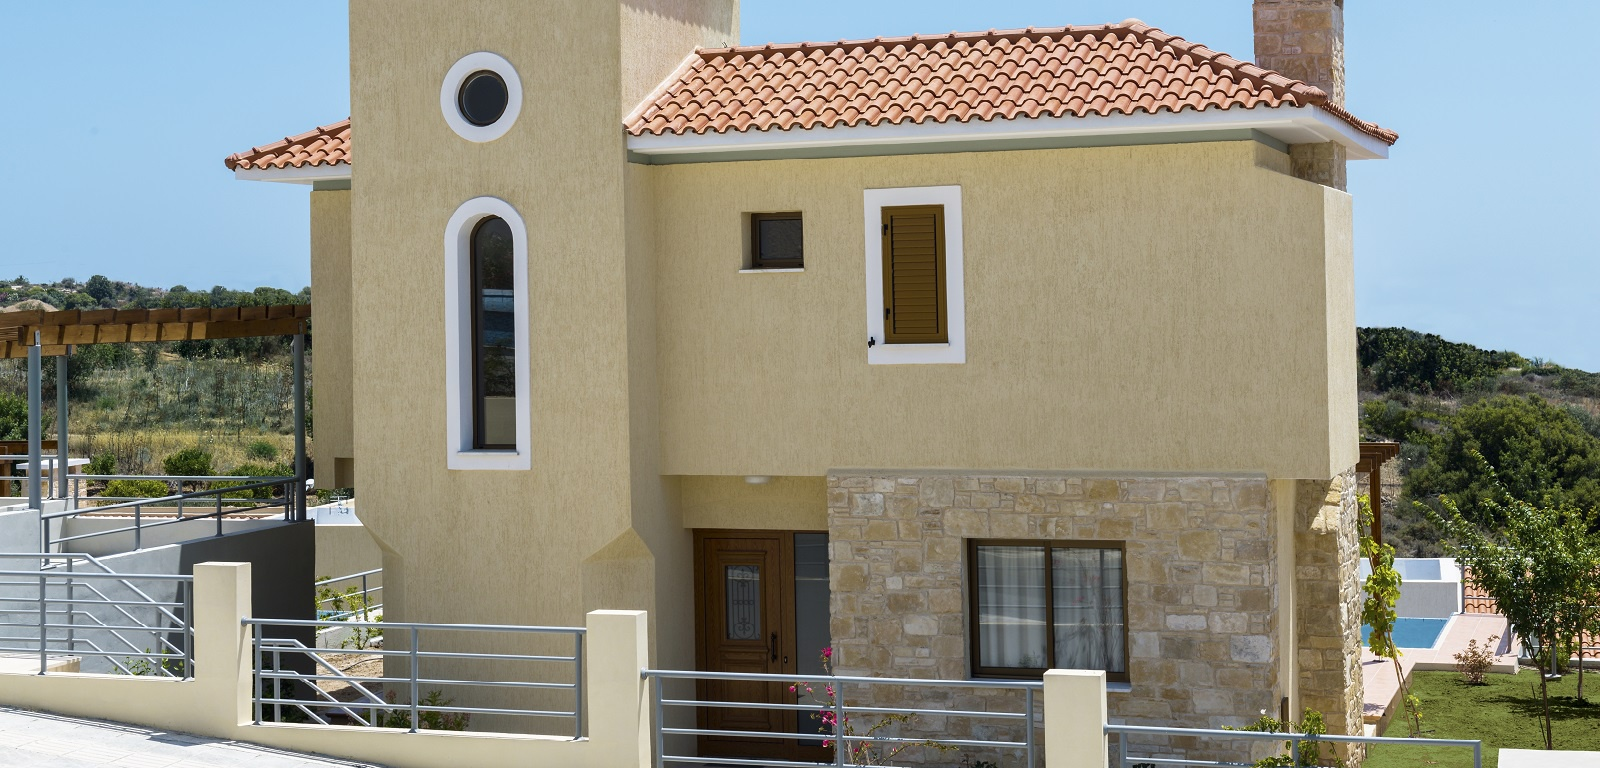 Willa 128 m² w Pafos